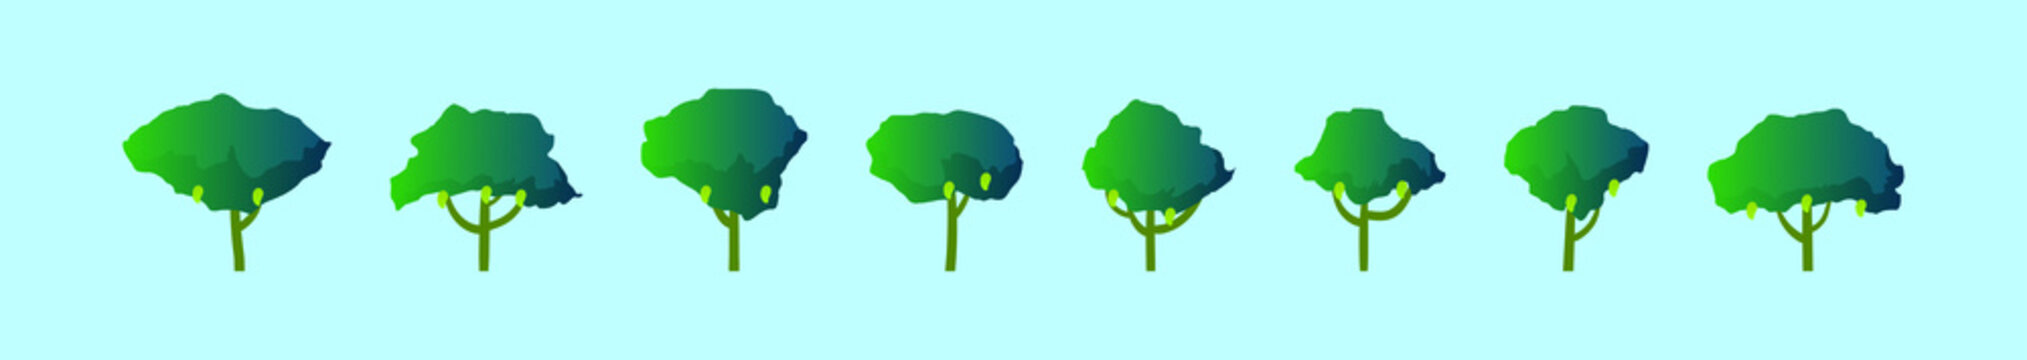 set of mangrove cartoon icon design template with various models. vector illustration isolated on blue background